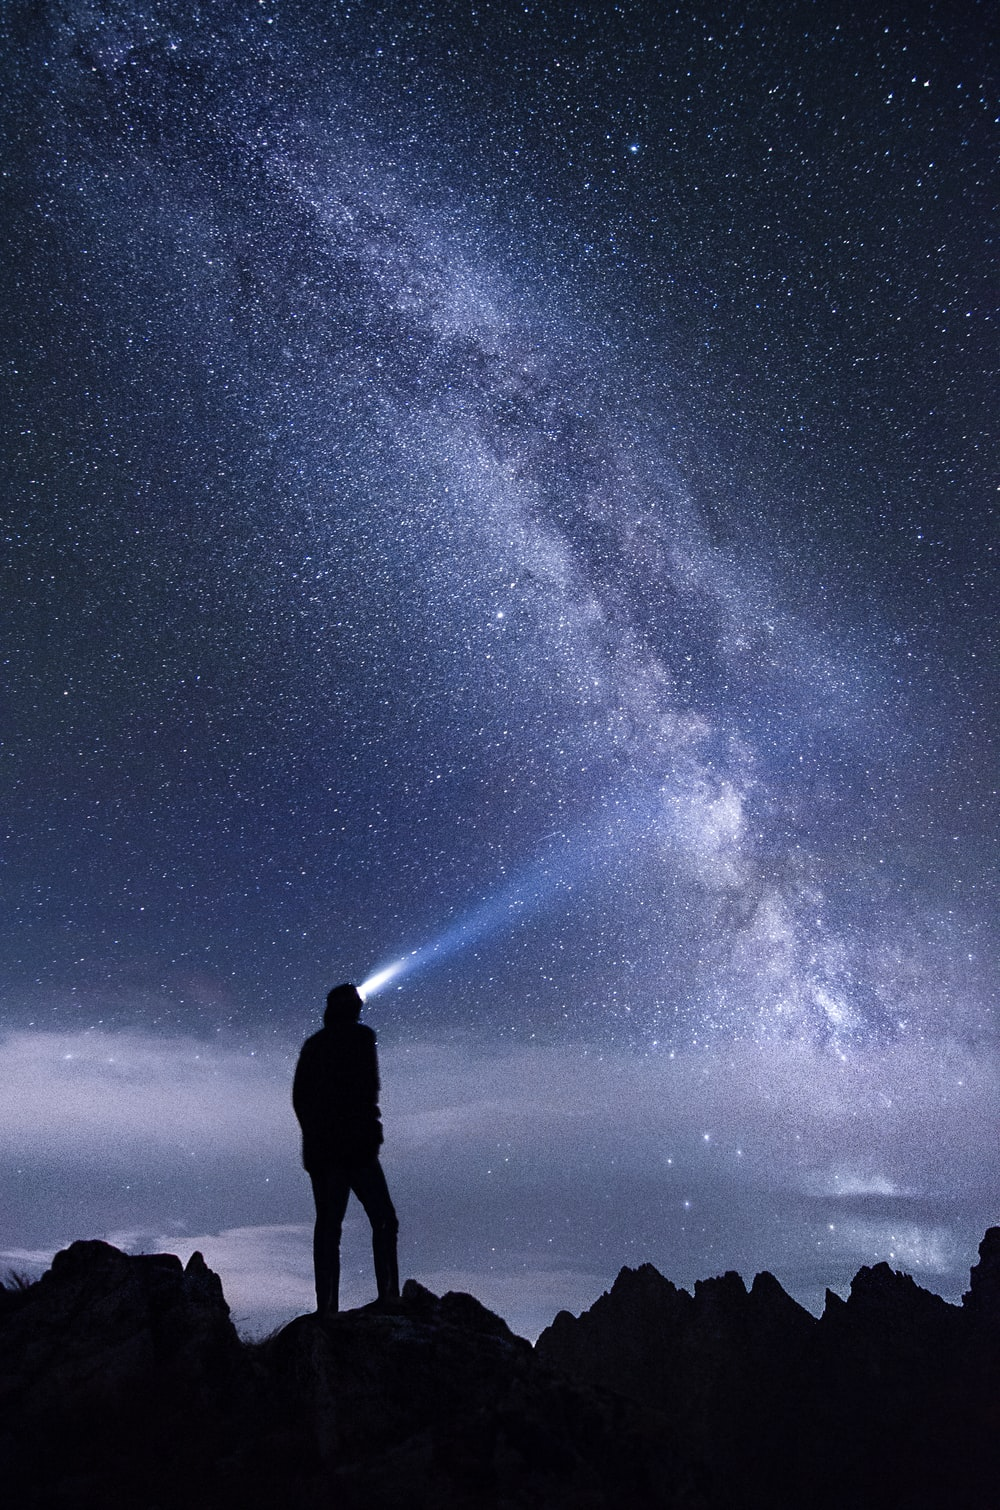 The milky way galaxy and a person's silhouette at nighttime in Kôprovský štít